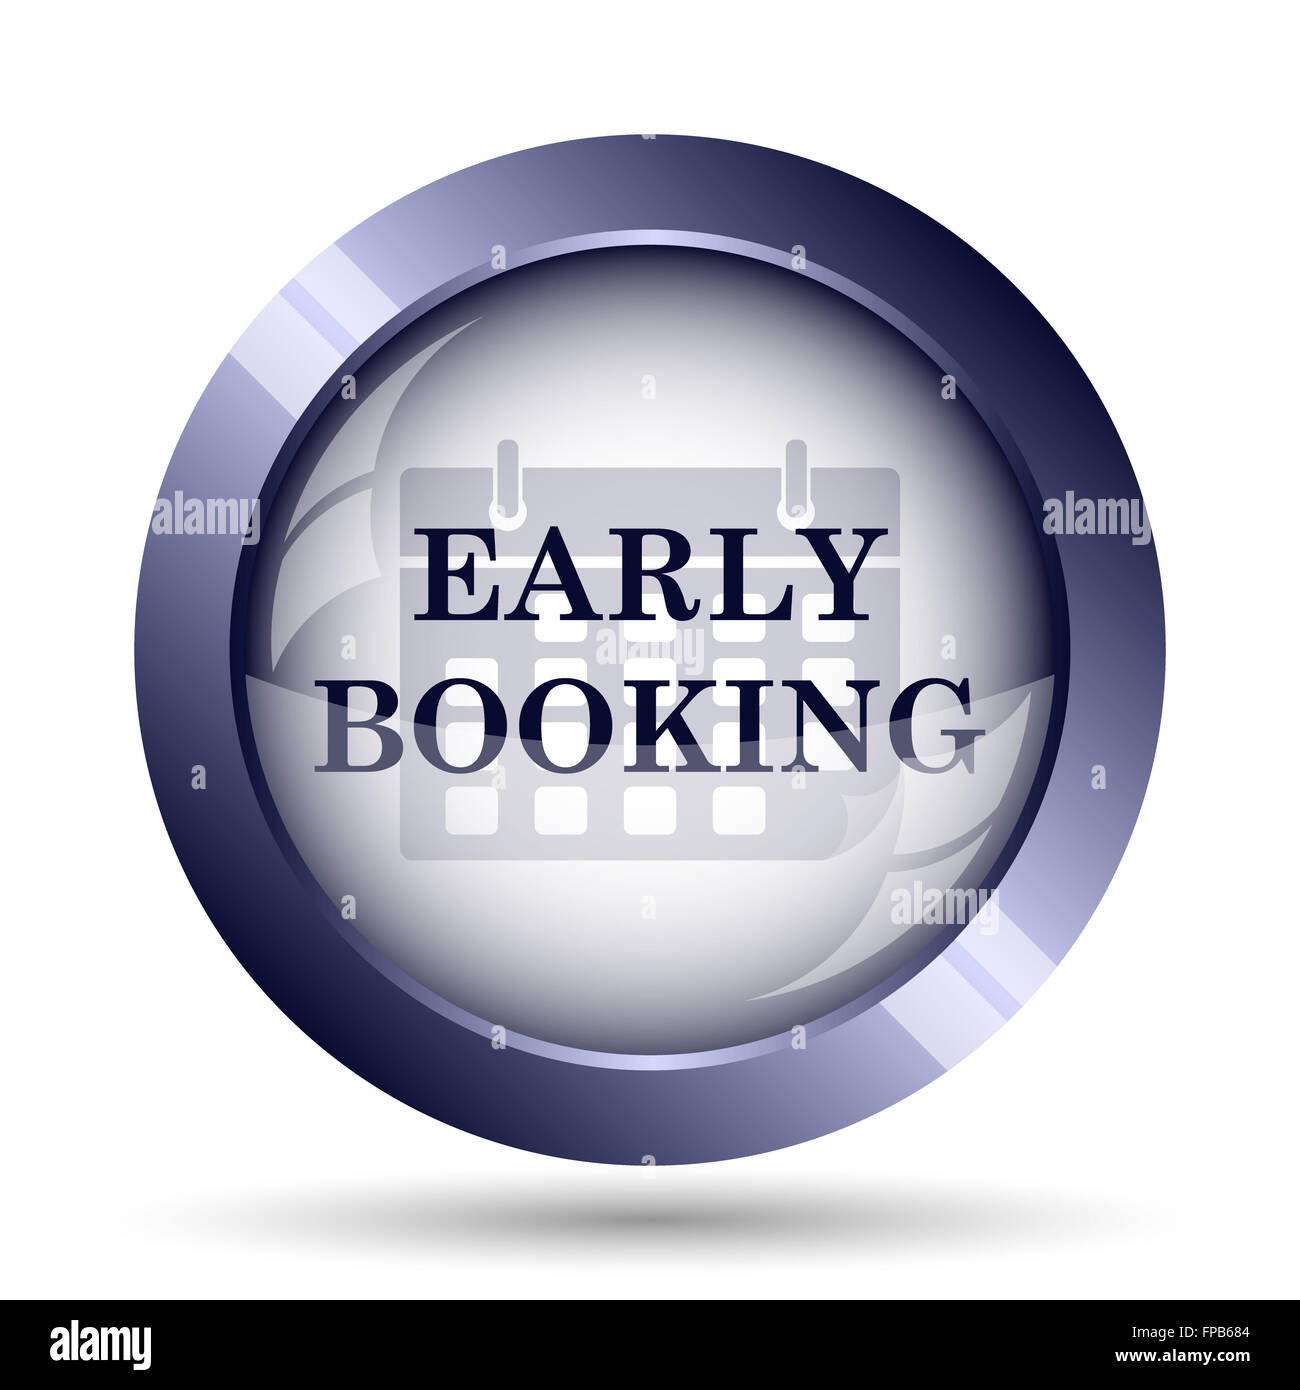 Early booking icon. Internet button on white background. - Stock Image